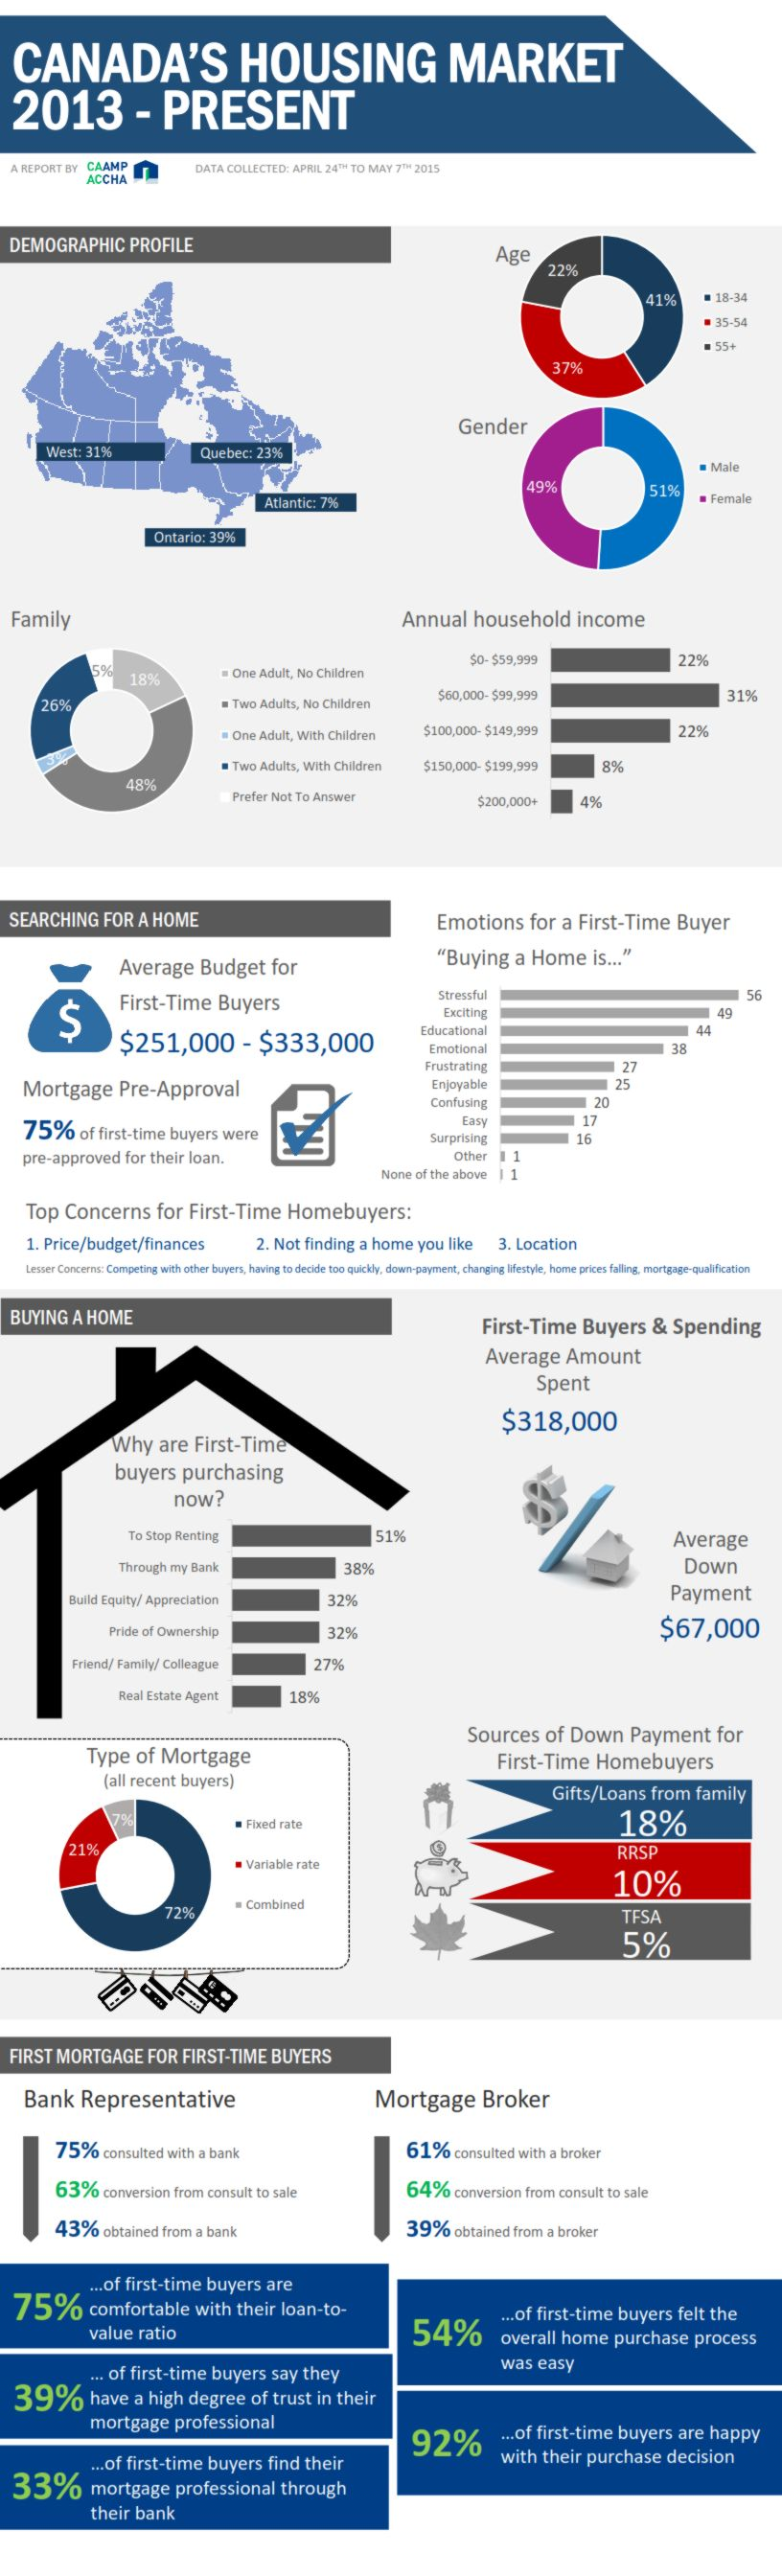 CAAMP mortgage survey 2015